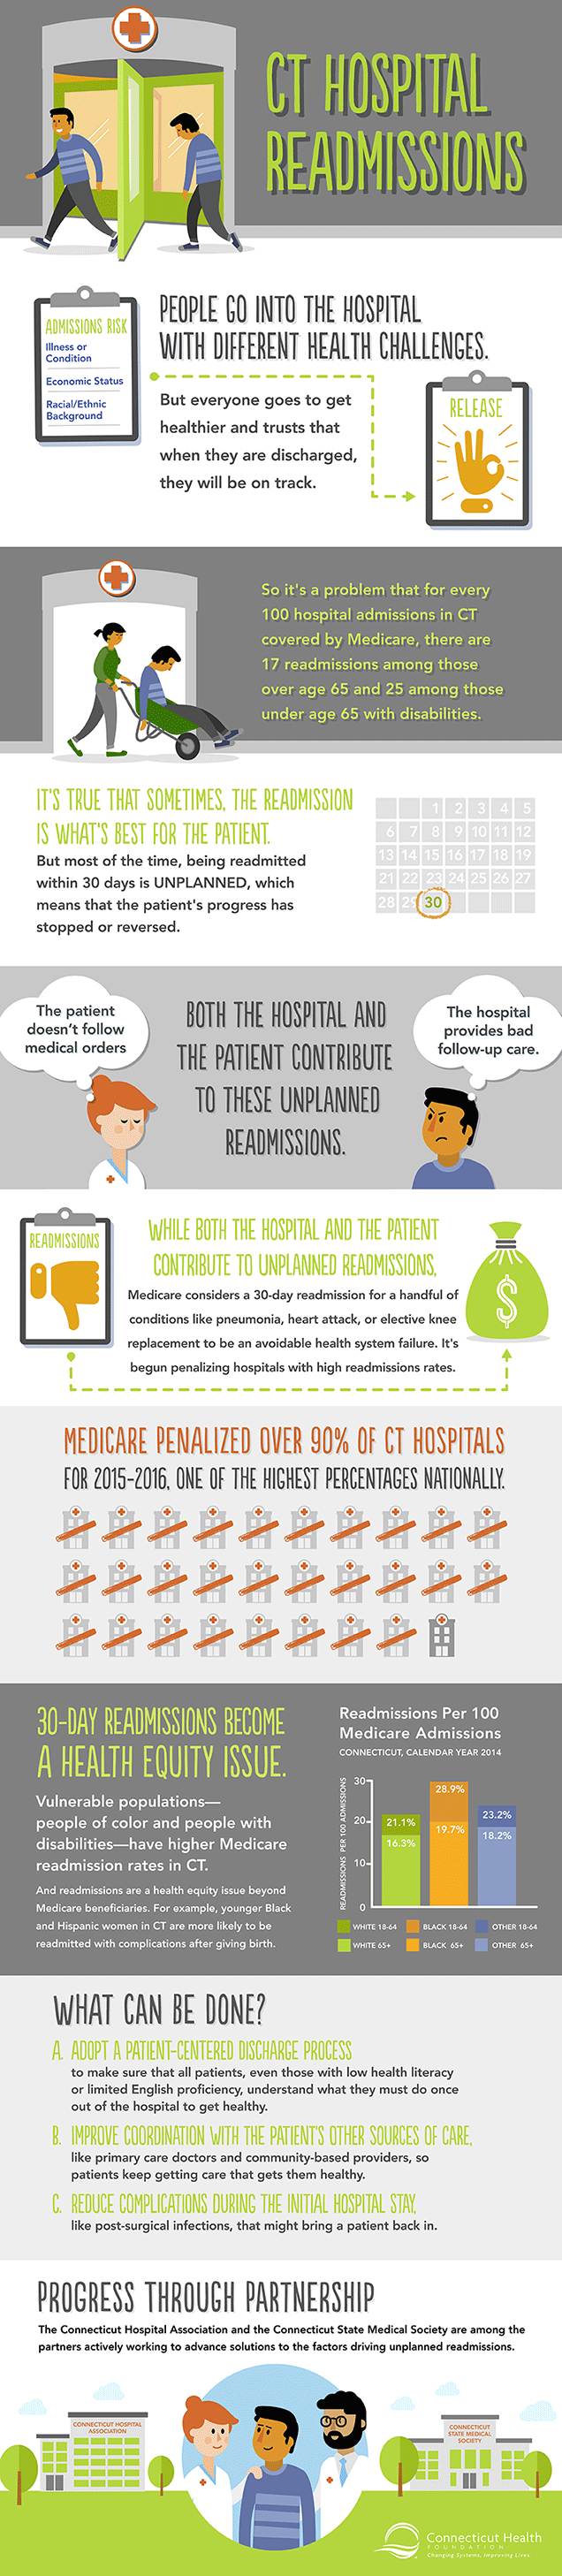 Connecticut Health Readmissions Infographic